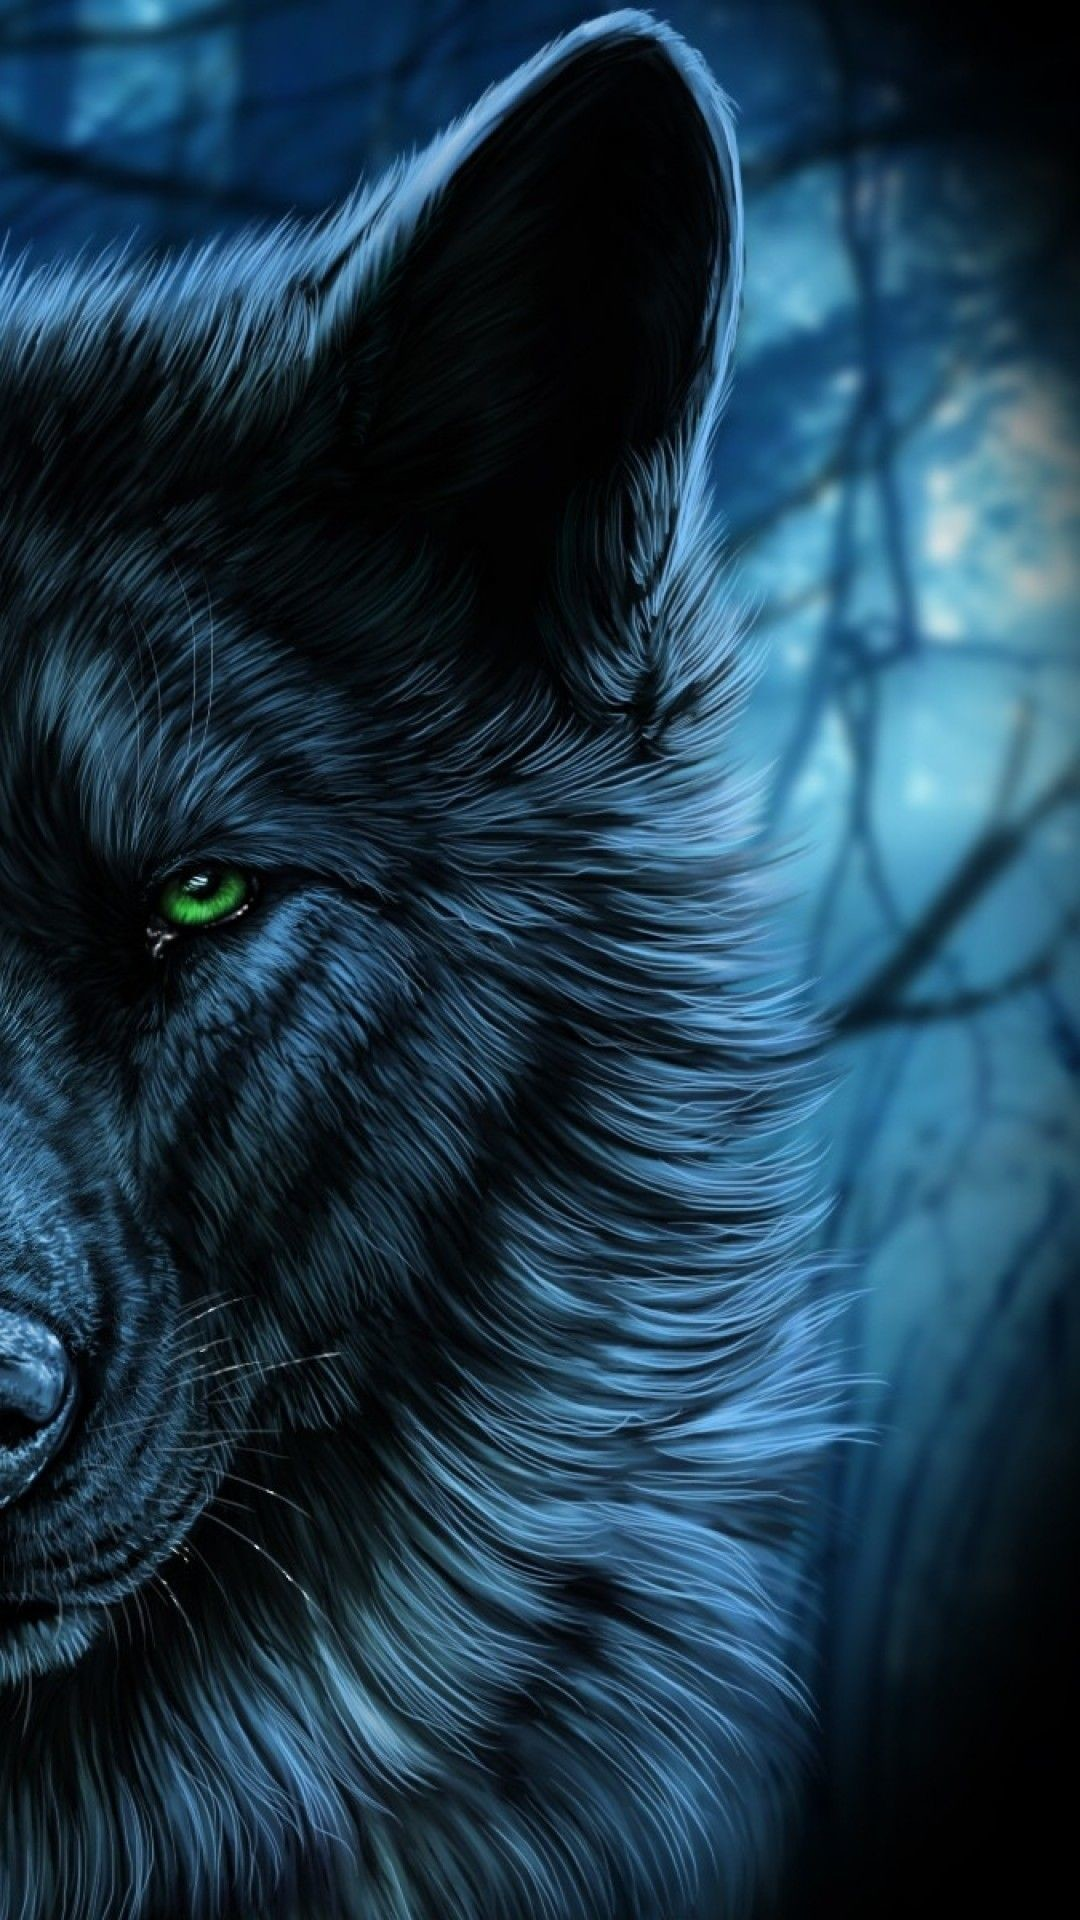 Moving Wolf Wallpapers 72 Images